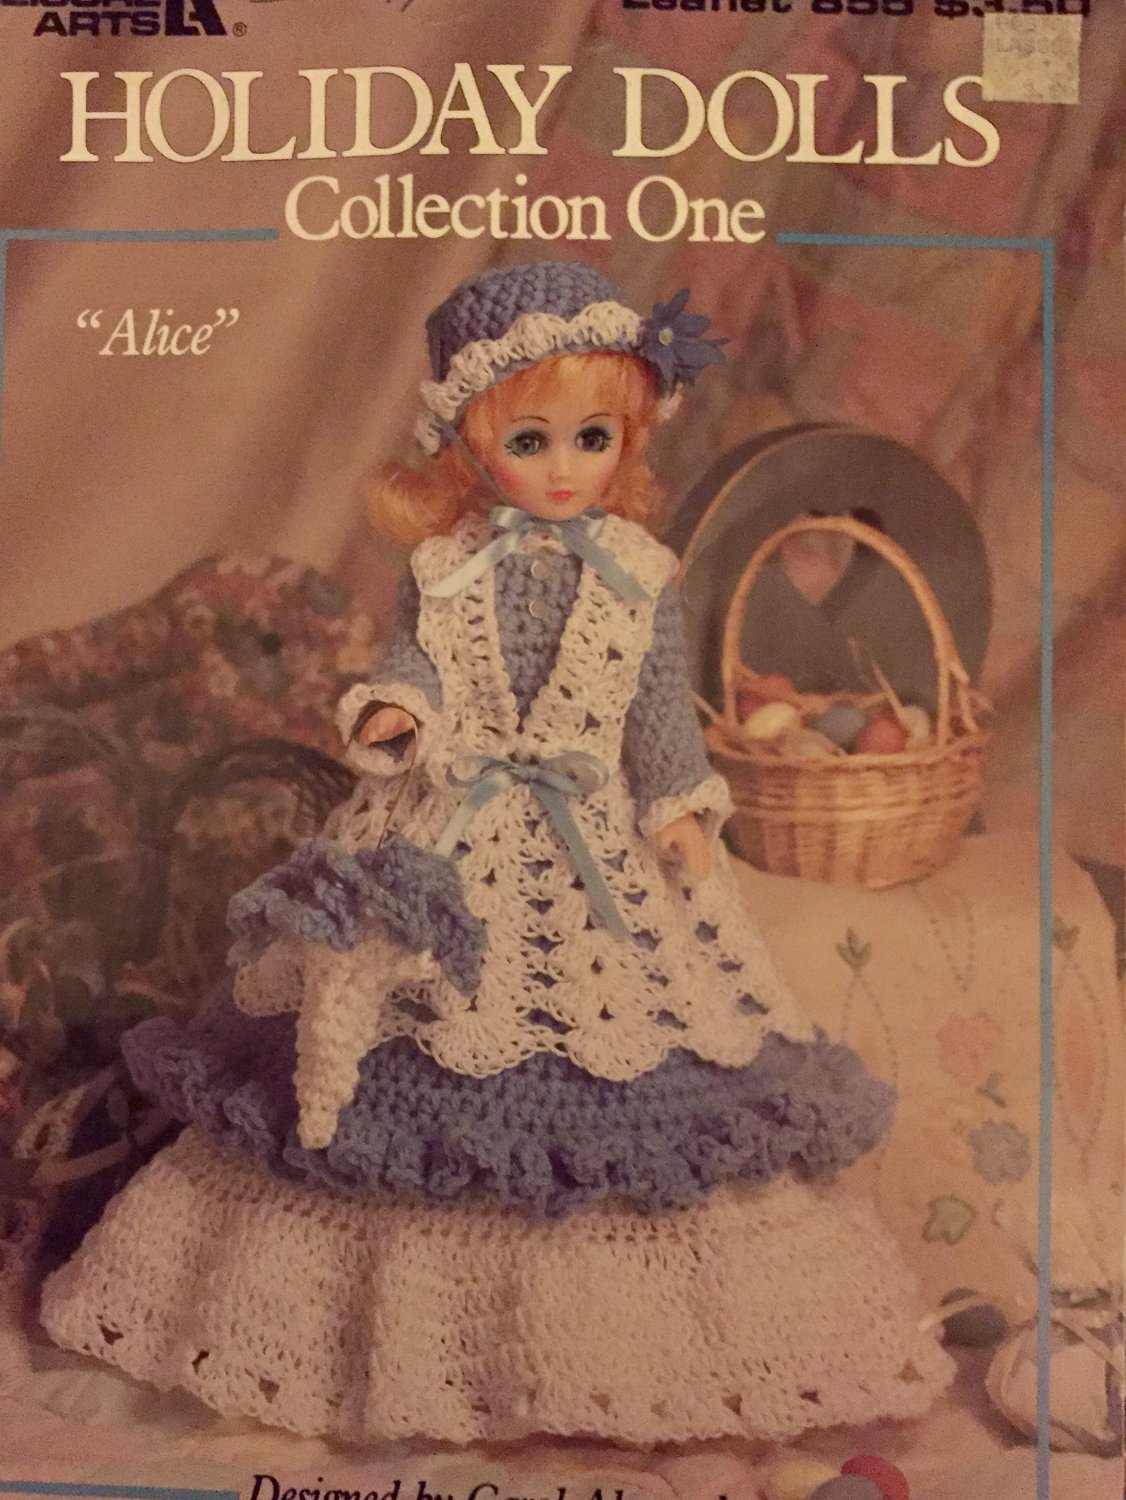 Holiday Dolls Collection One Crochet Pattern Book Leisure Arts 855